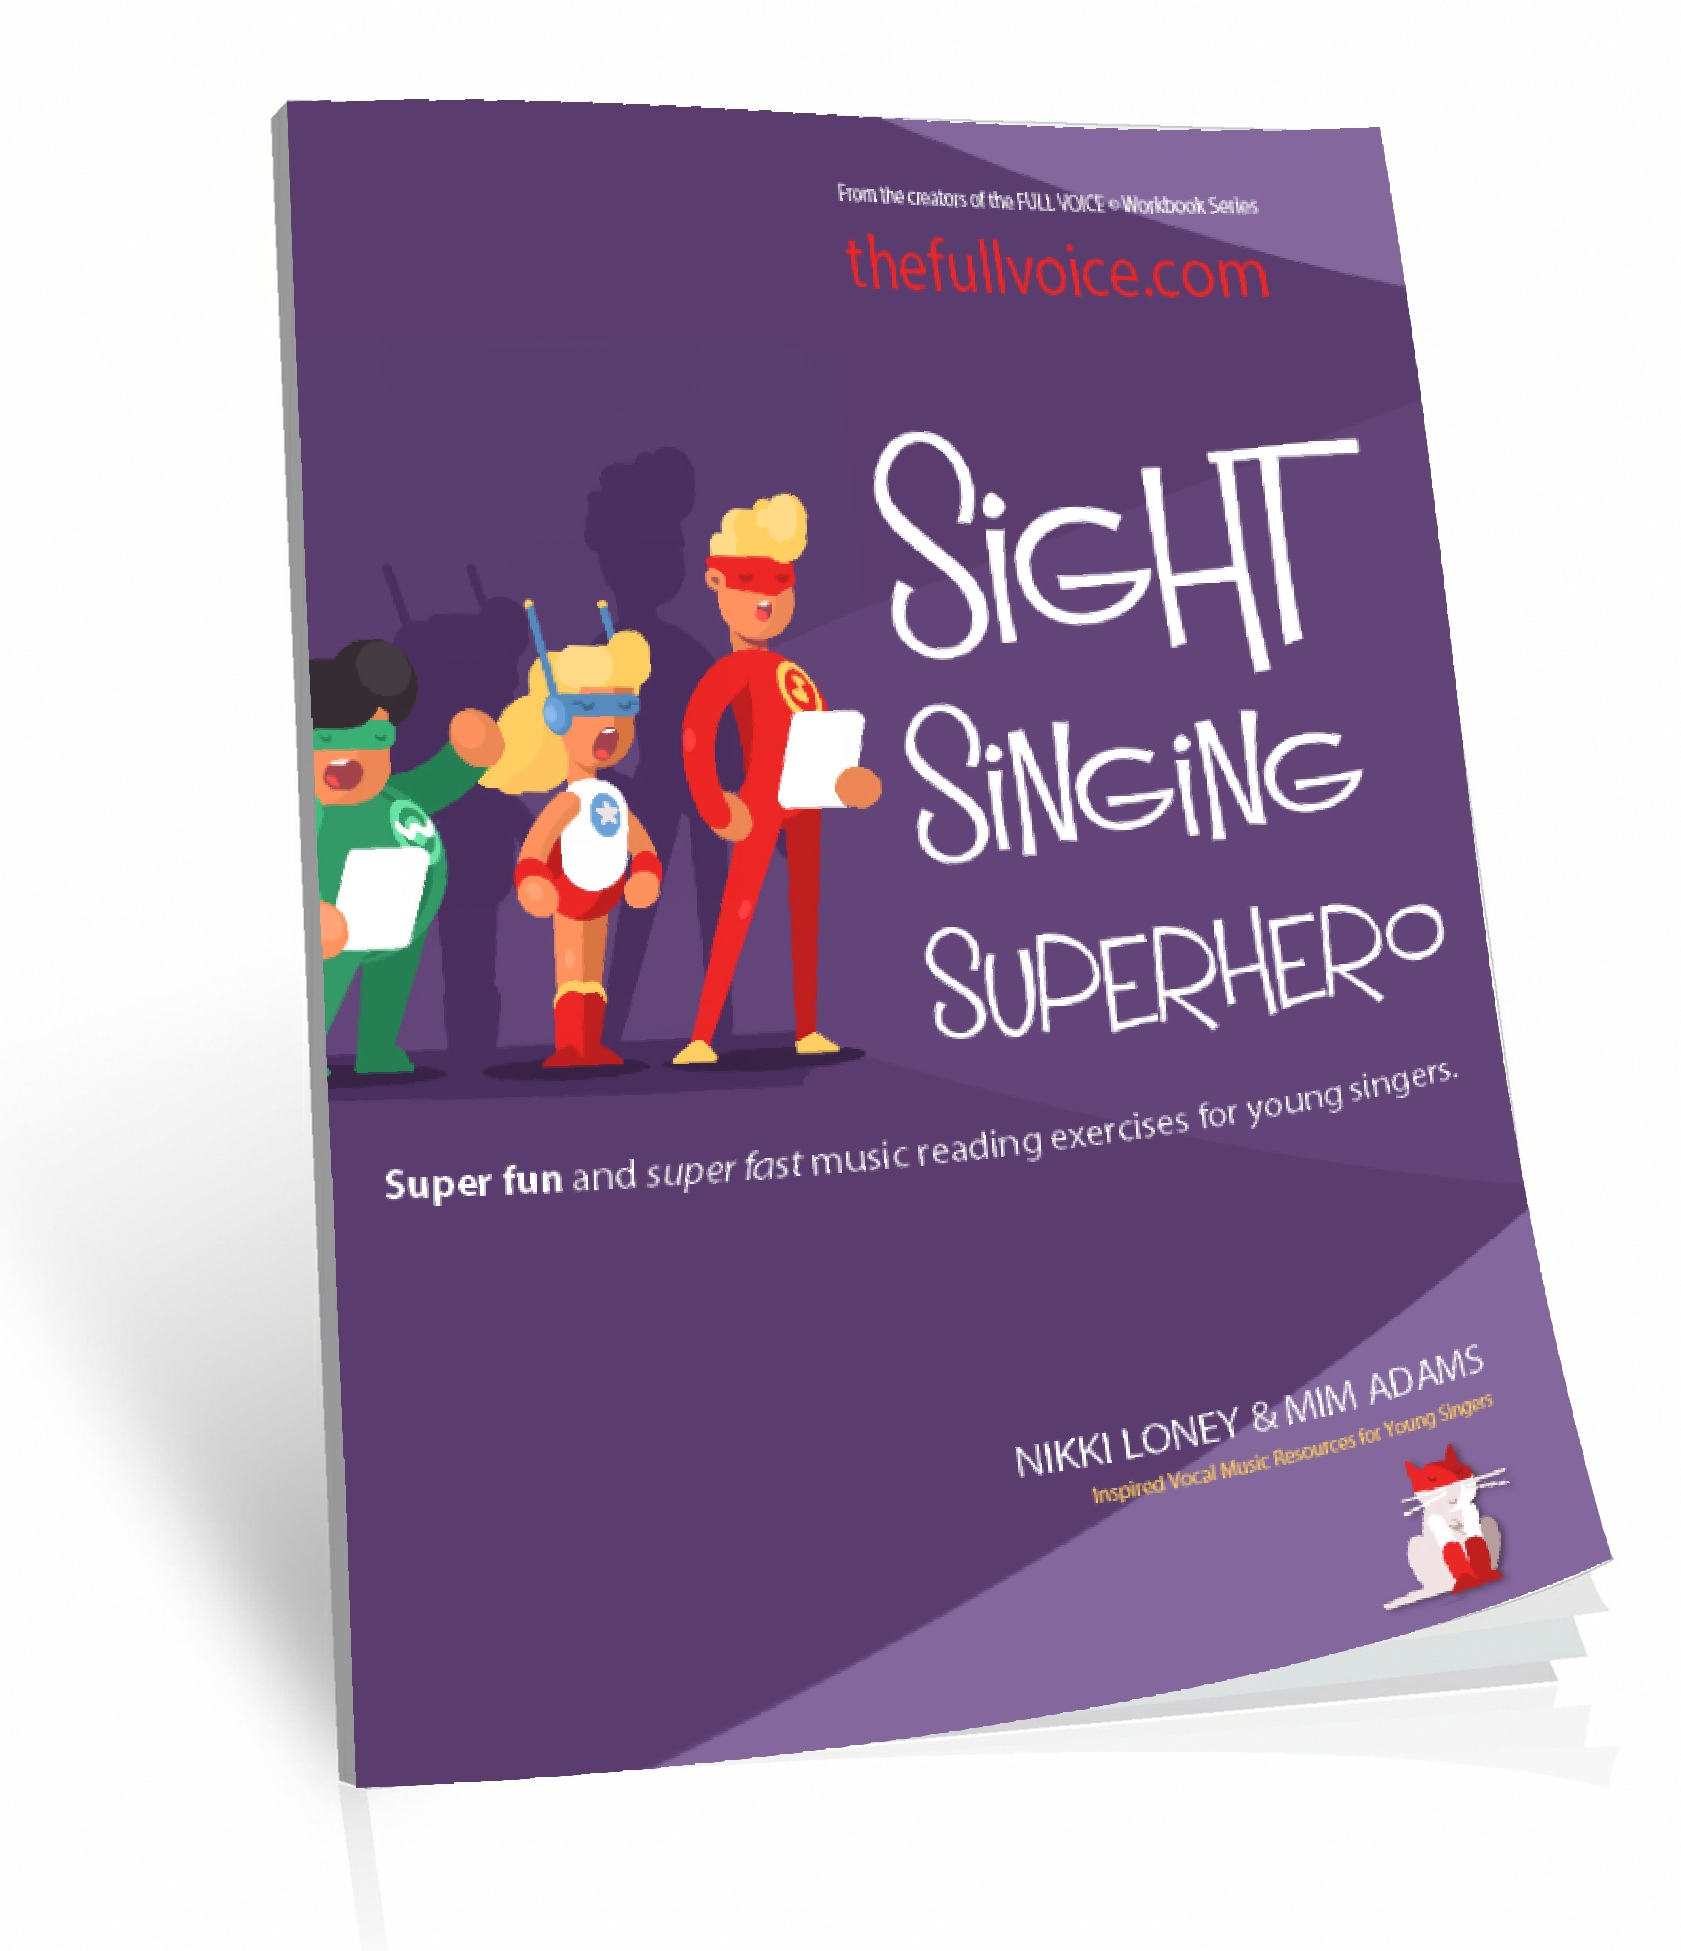 sight singing superhero mock up.jpg